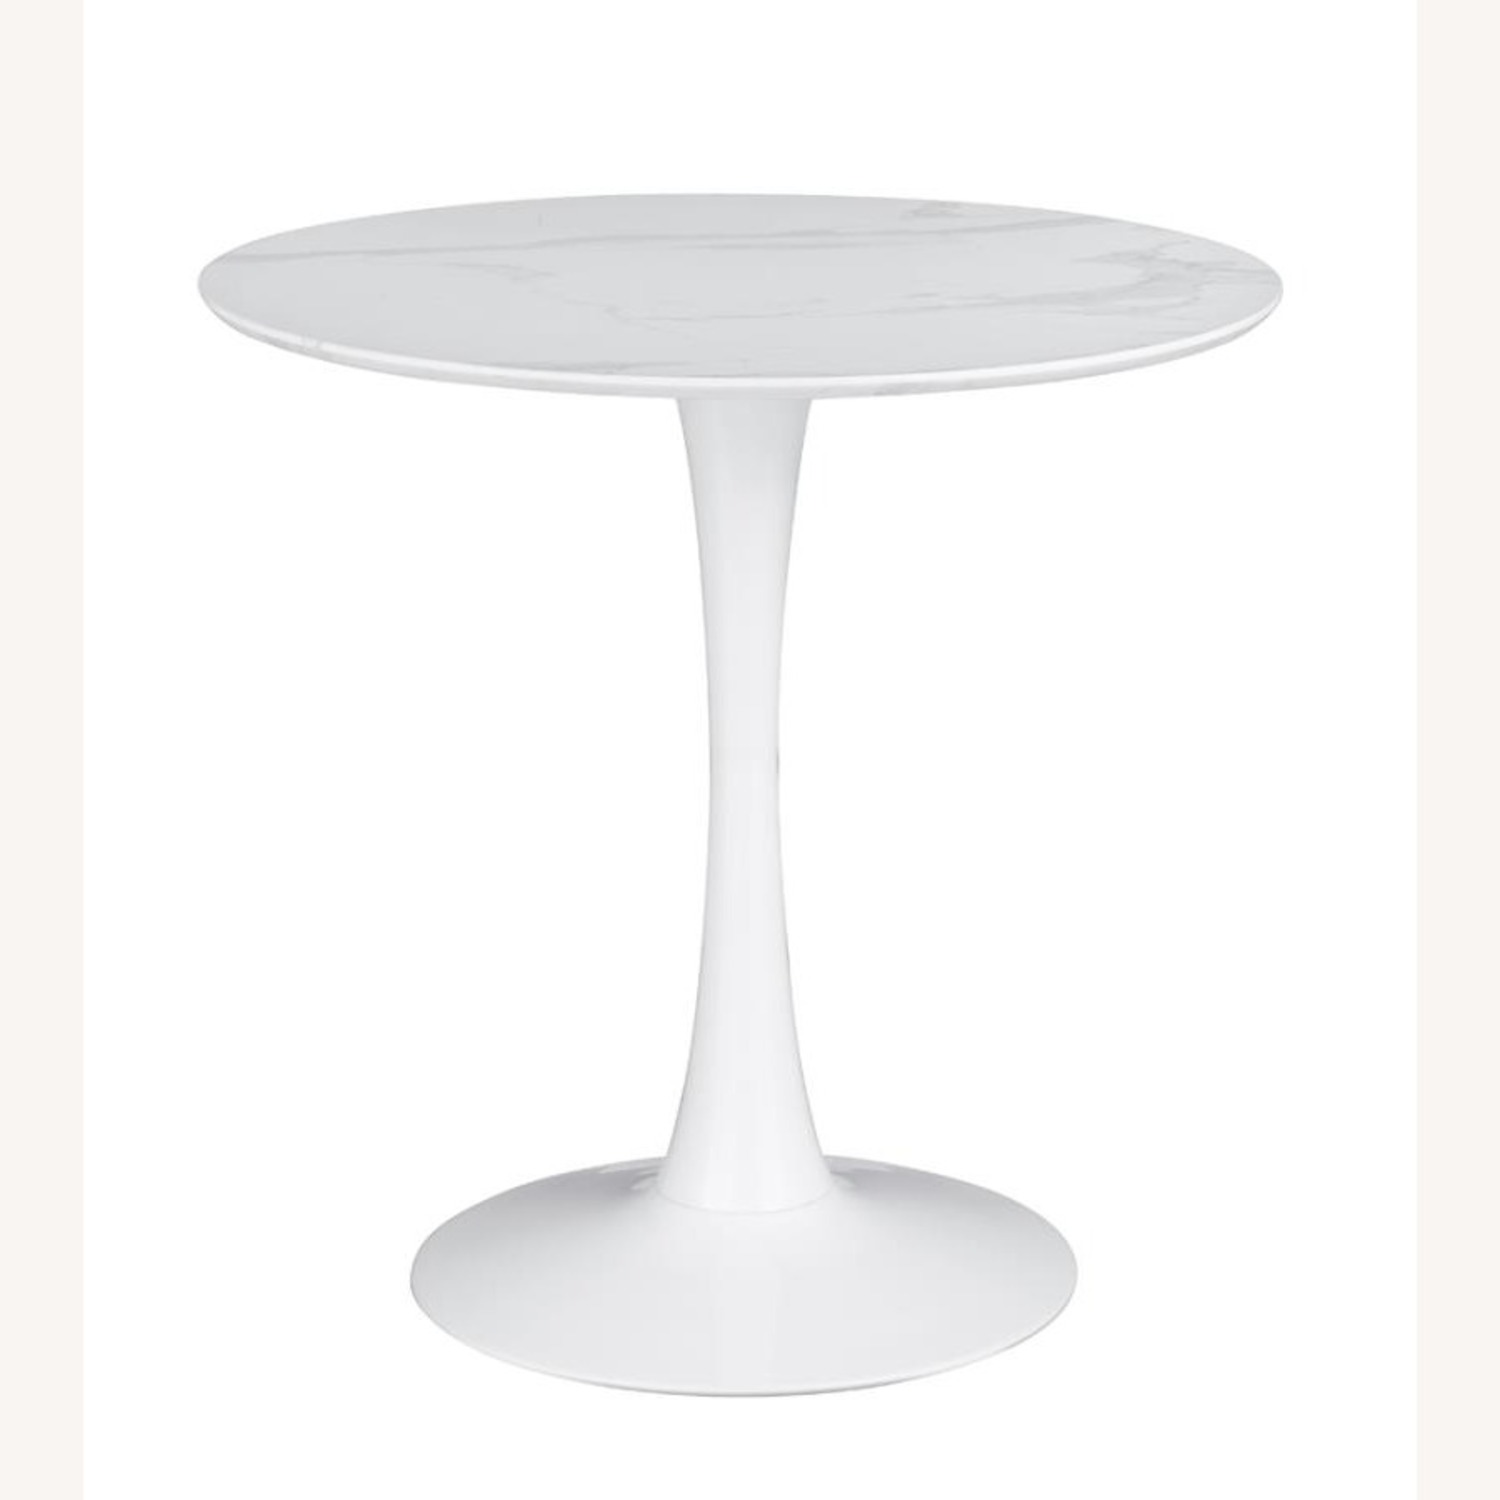 Round Dining Table In White Faux Marble Top - image-0